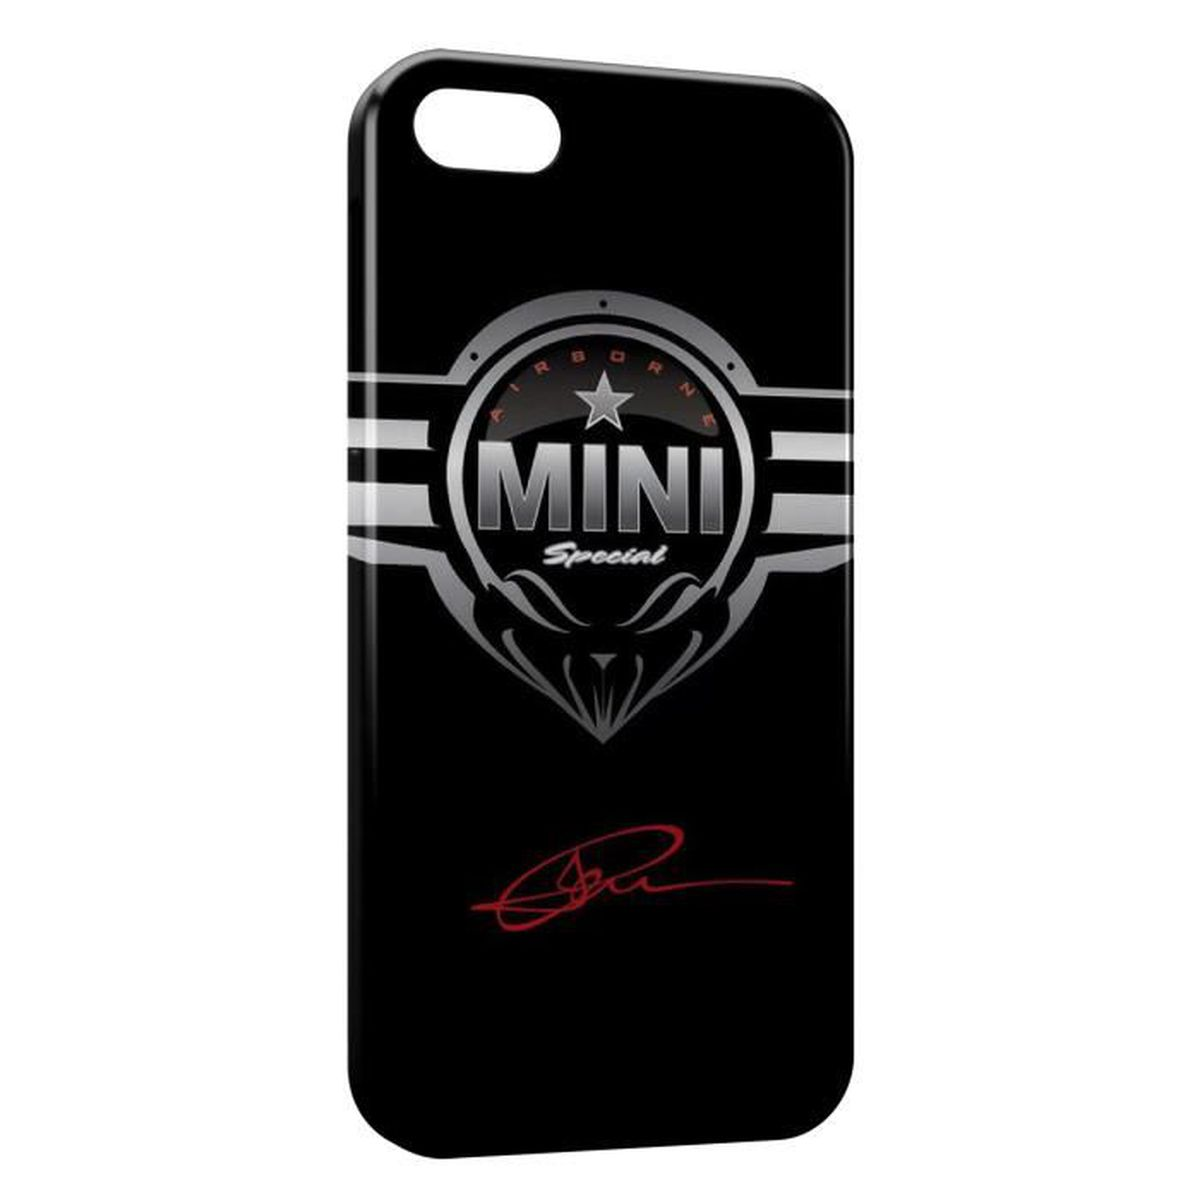 coque iphone 8 plus mini cooper